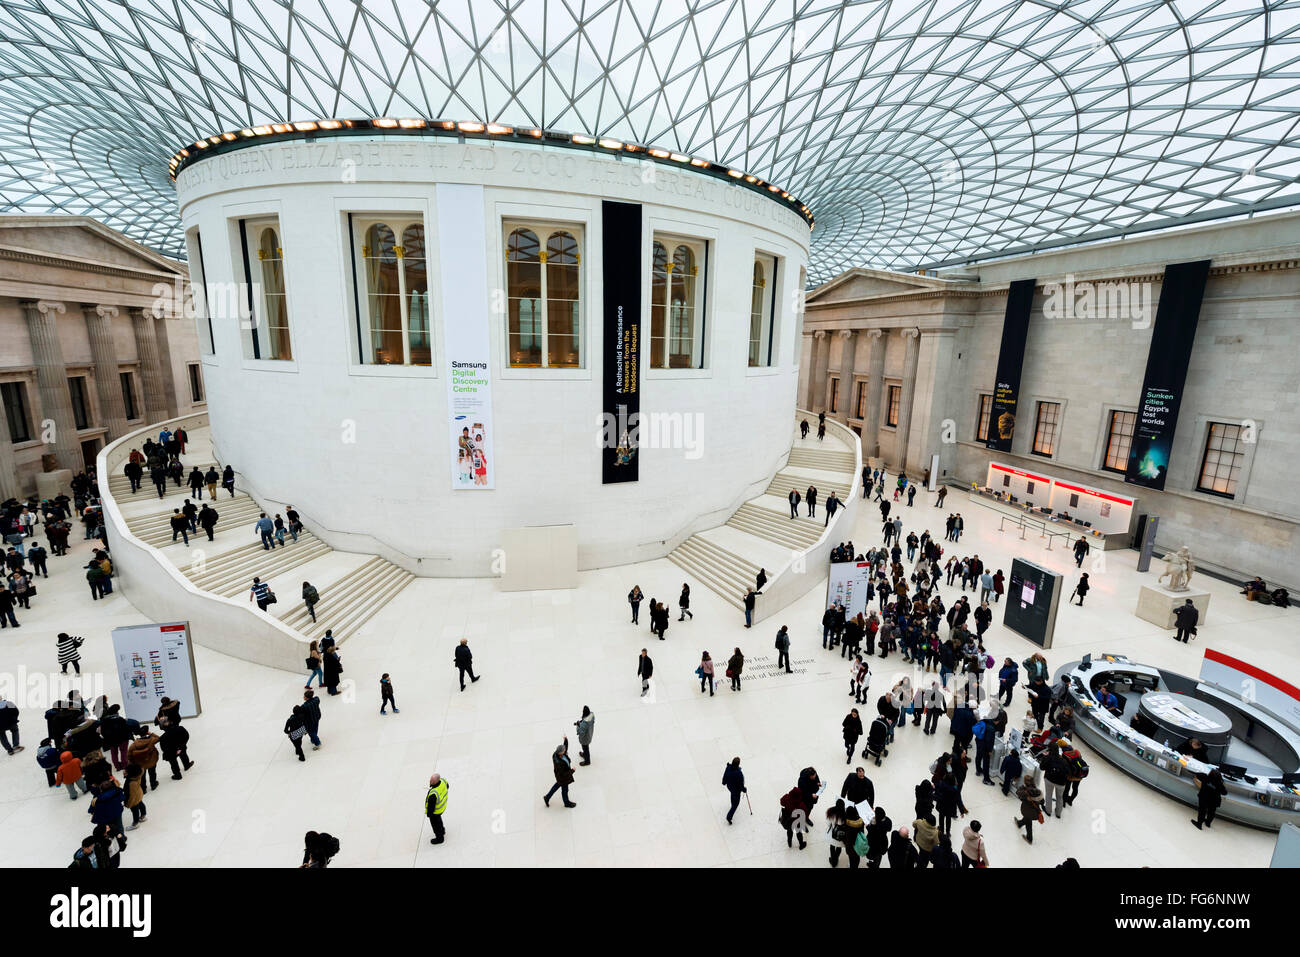 The Great Court in the British Museum, Bloomsbury, London, England, UK - Stock Image